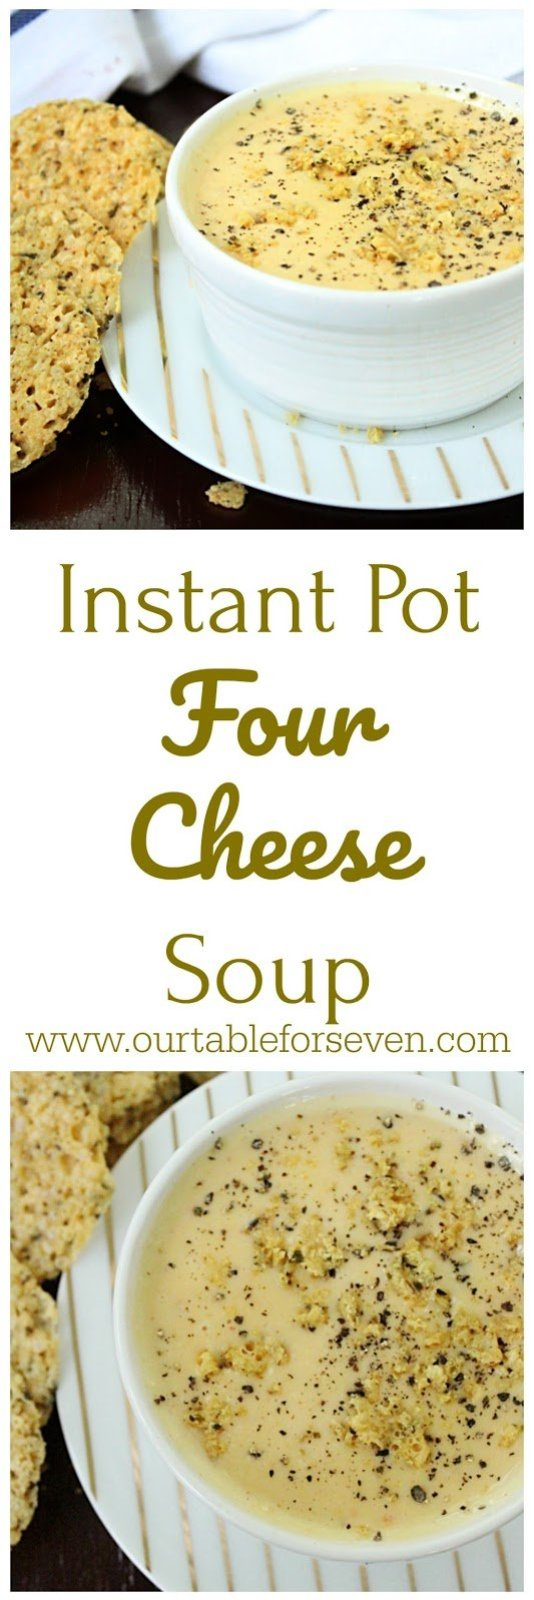 Instant Pot Four Cheese Soup from Table for Seven